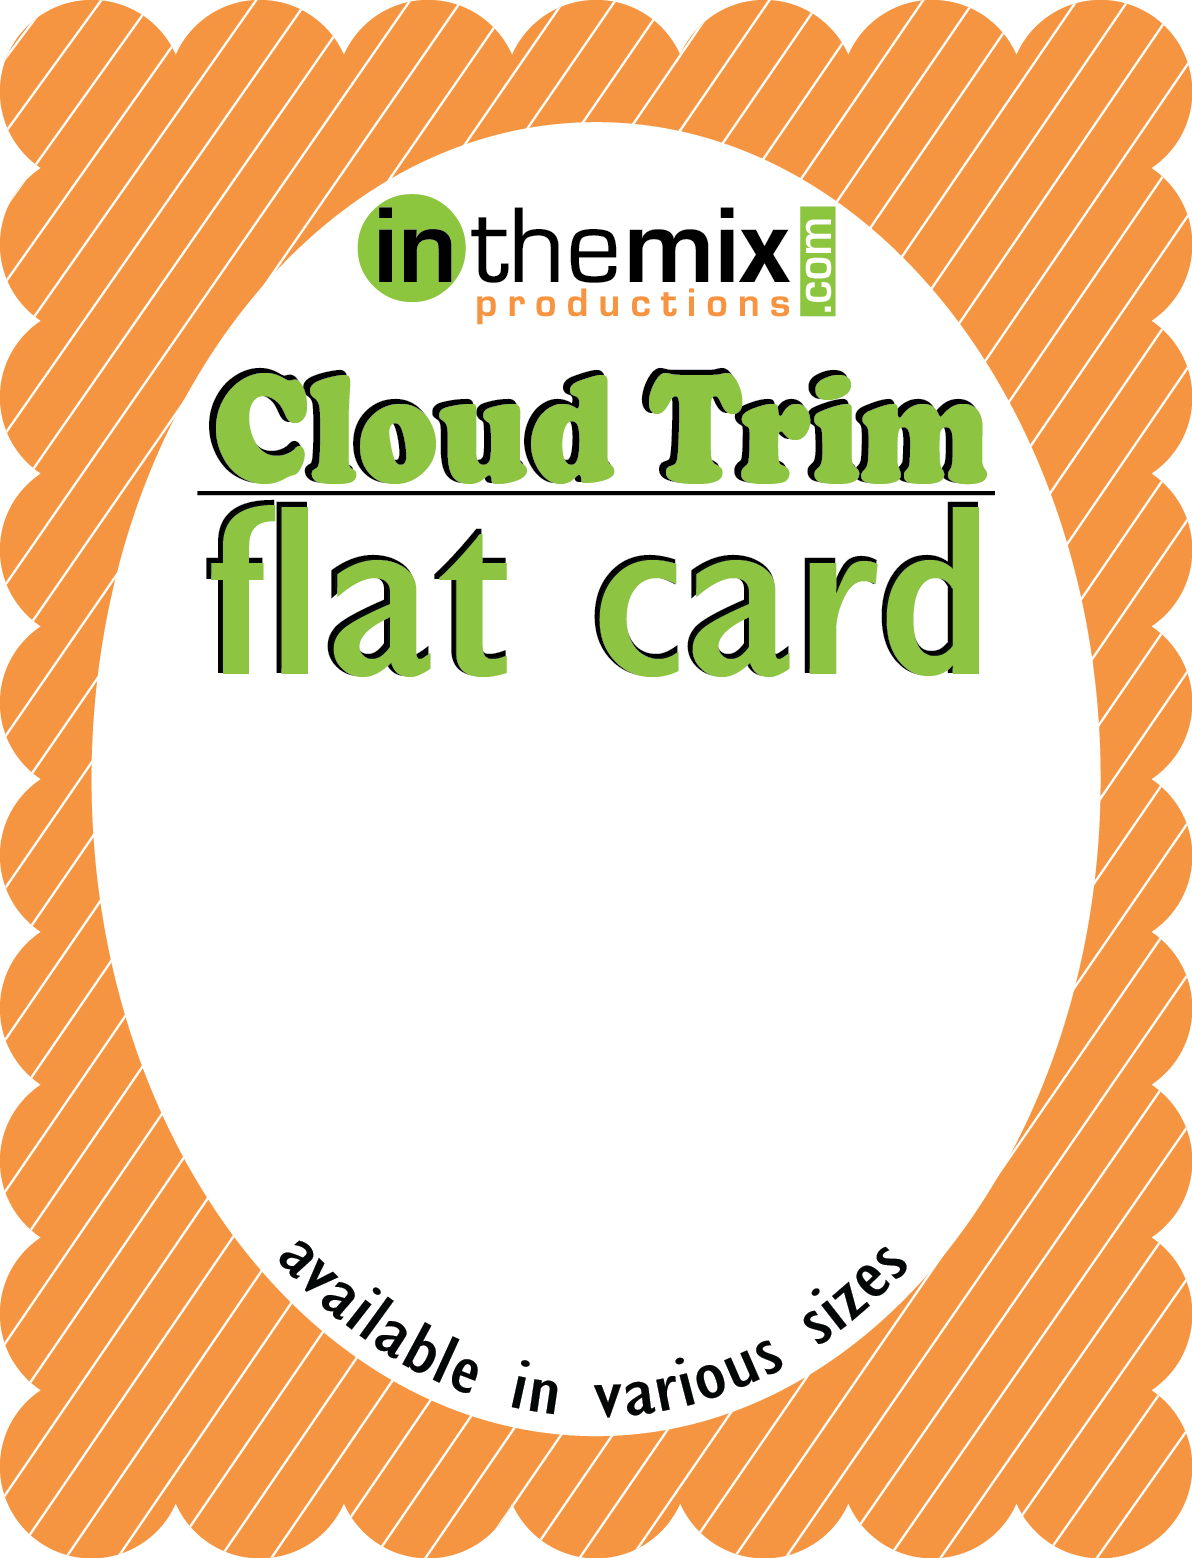 Cloud trim flat greeting. Raffle clipart business card